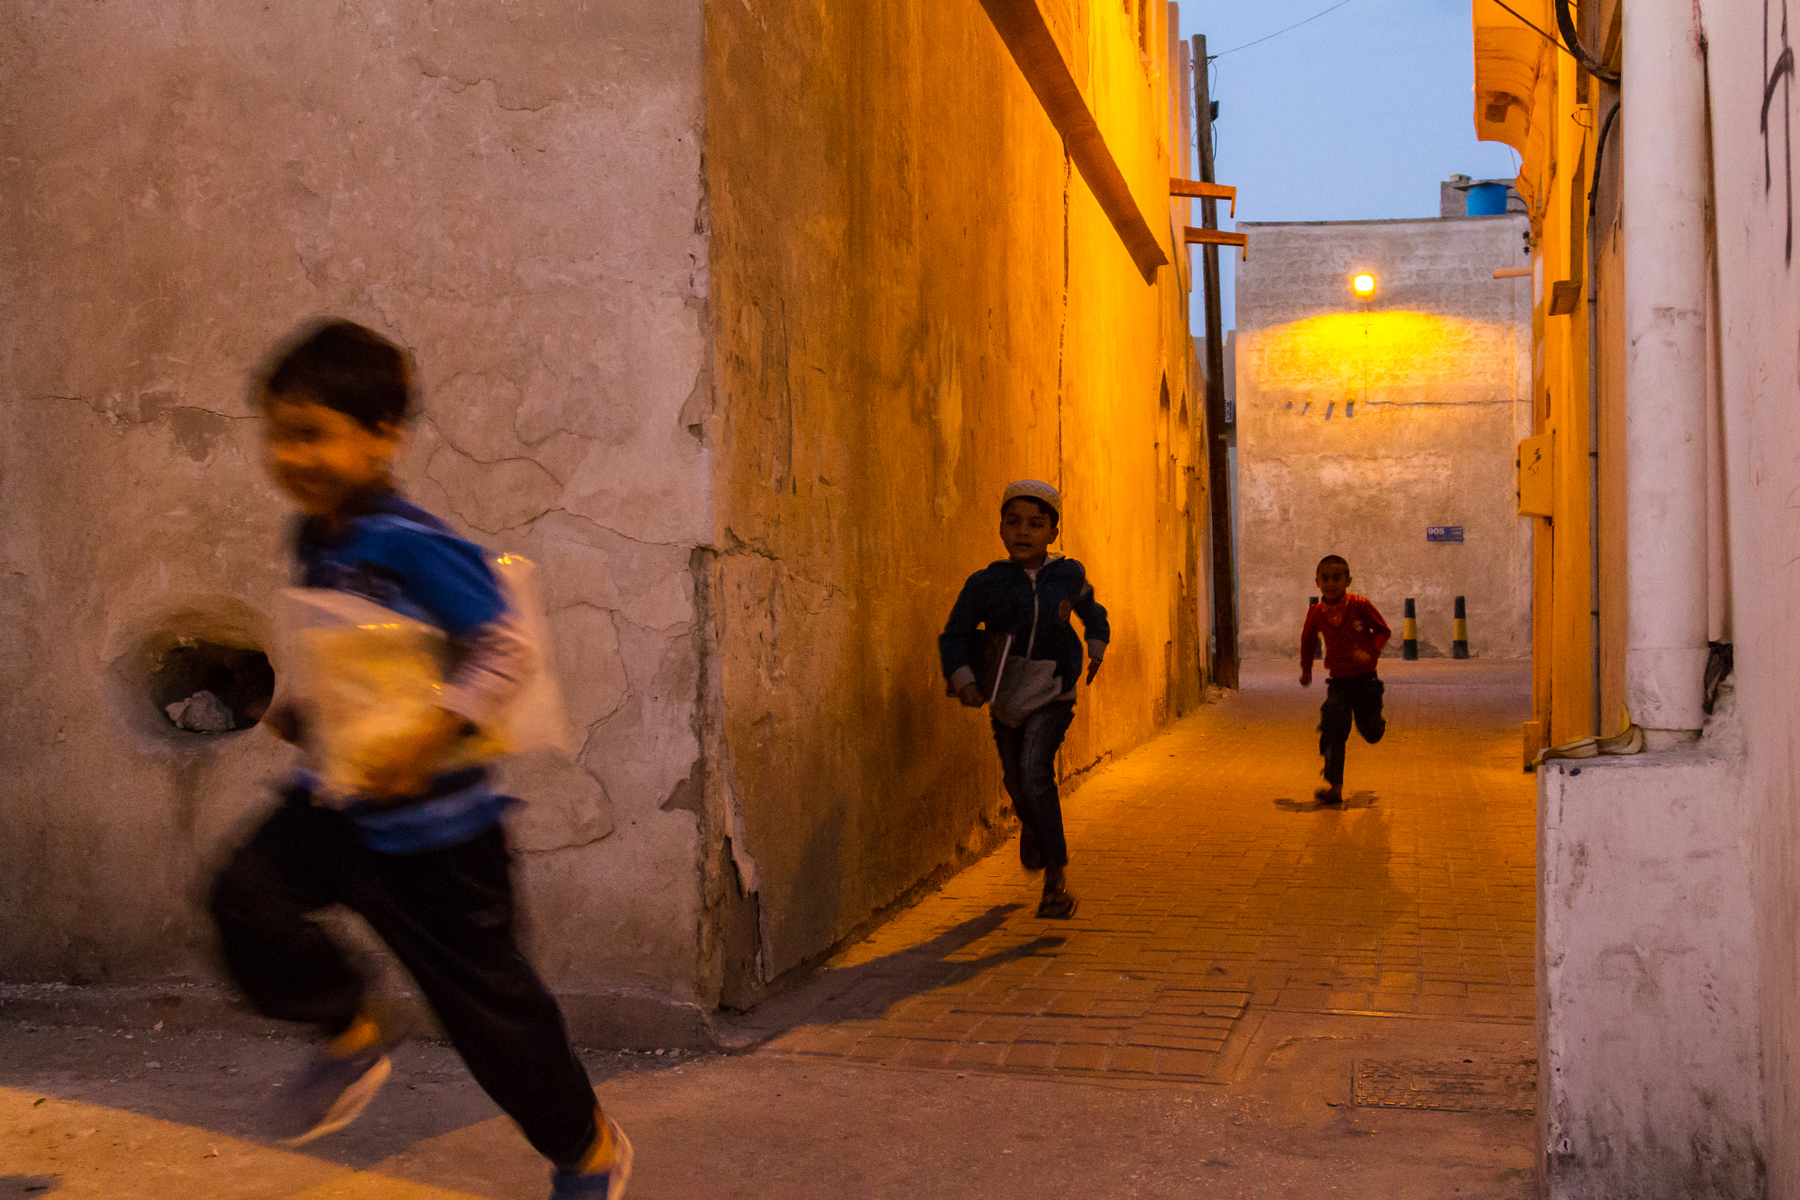 As the sundown Maghrib call to prayer filled the streets, the men entered the mosque as the boys chased each other down old Muharraq alleyways with Quran's tucked under their arms.